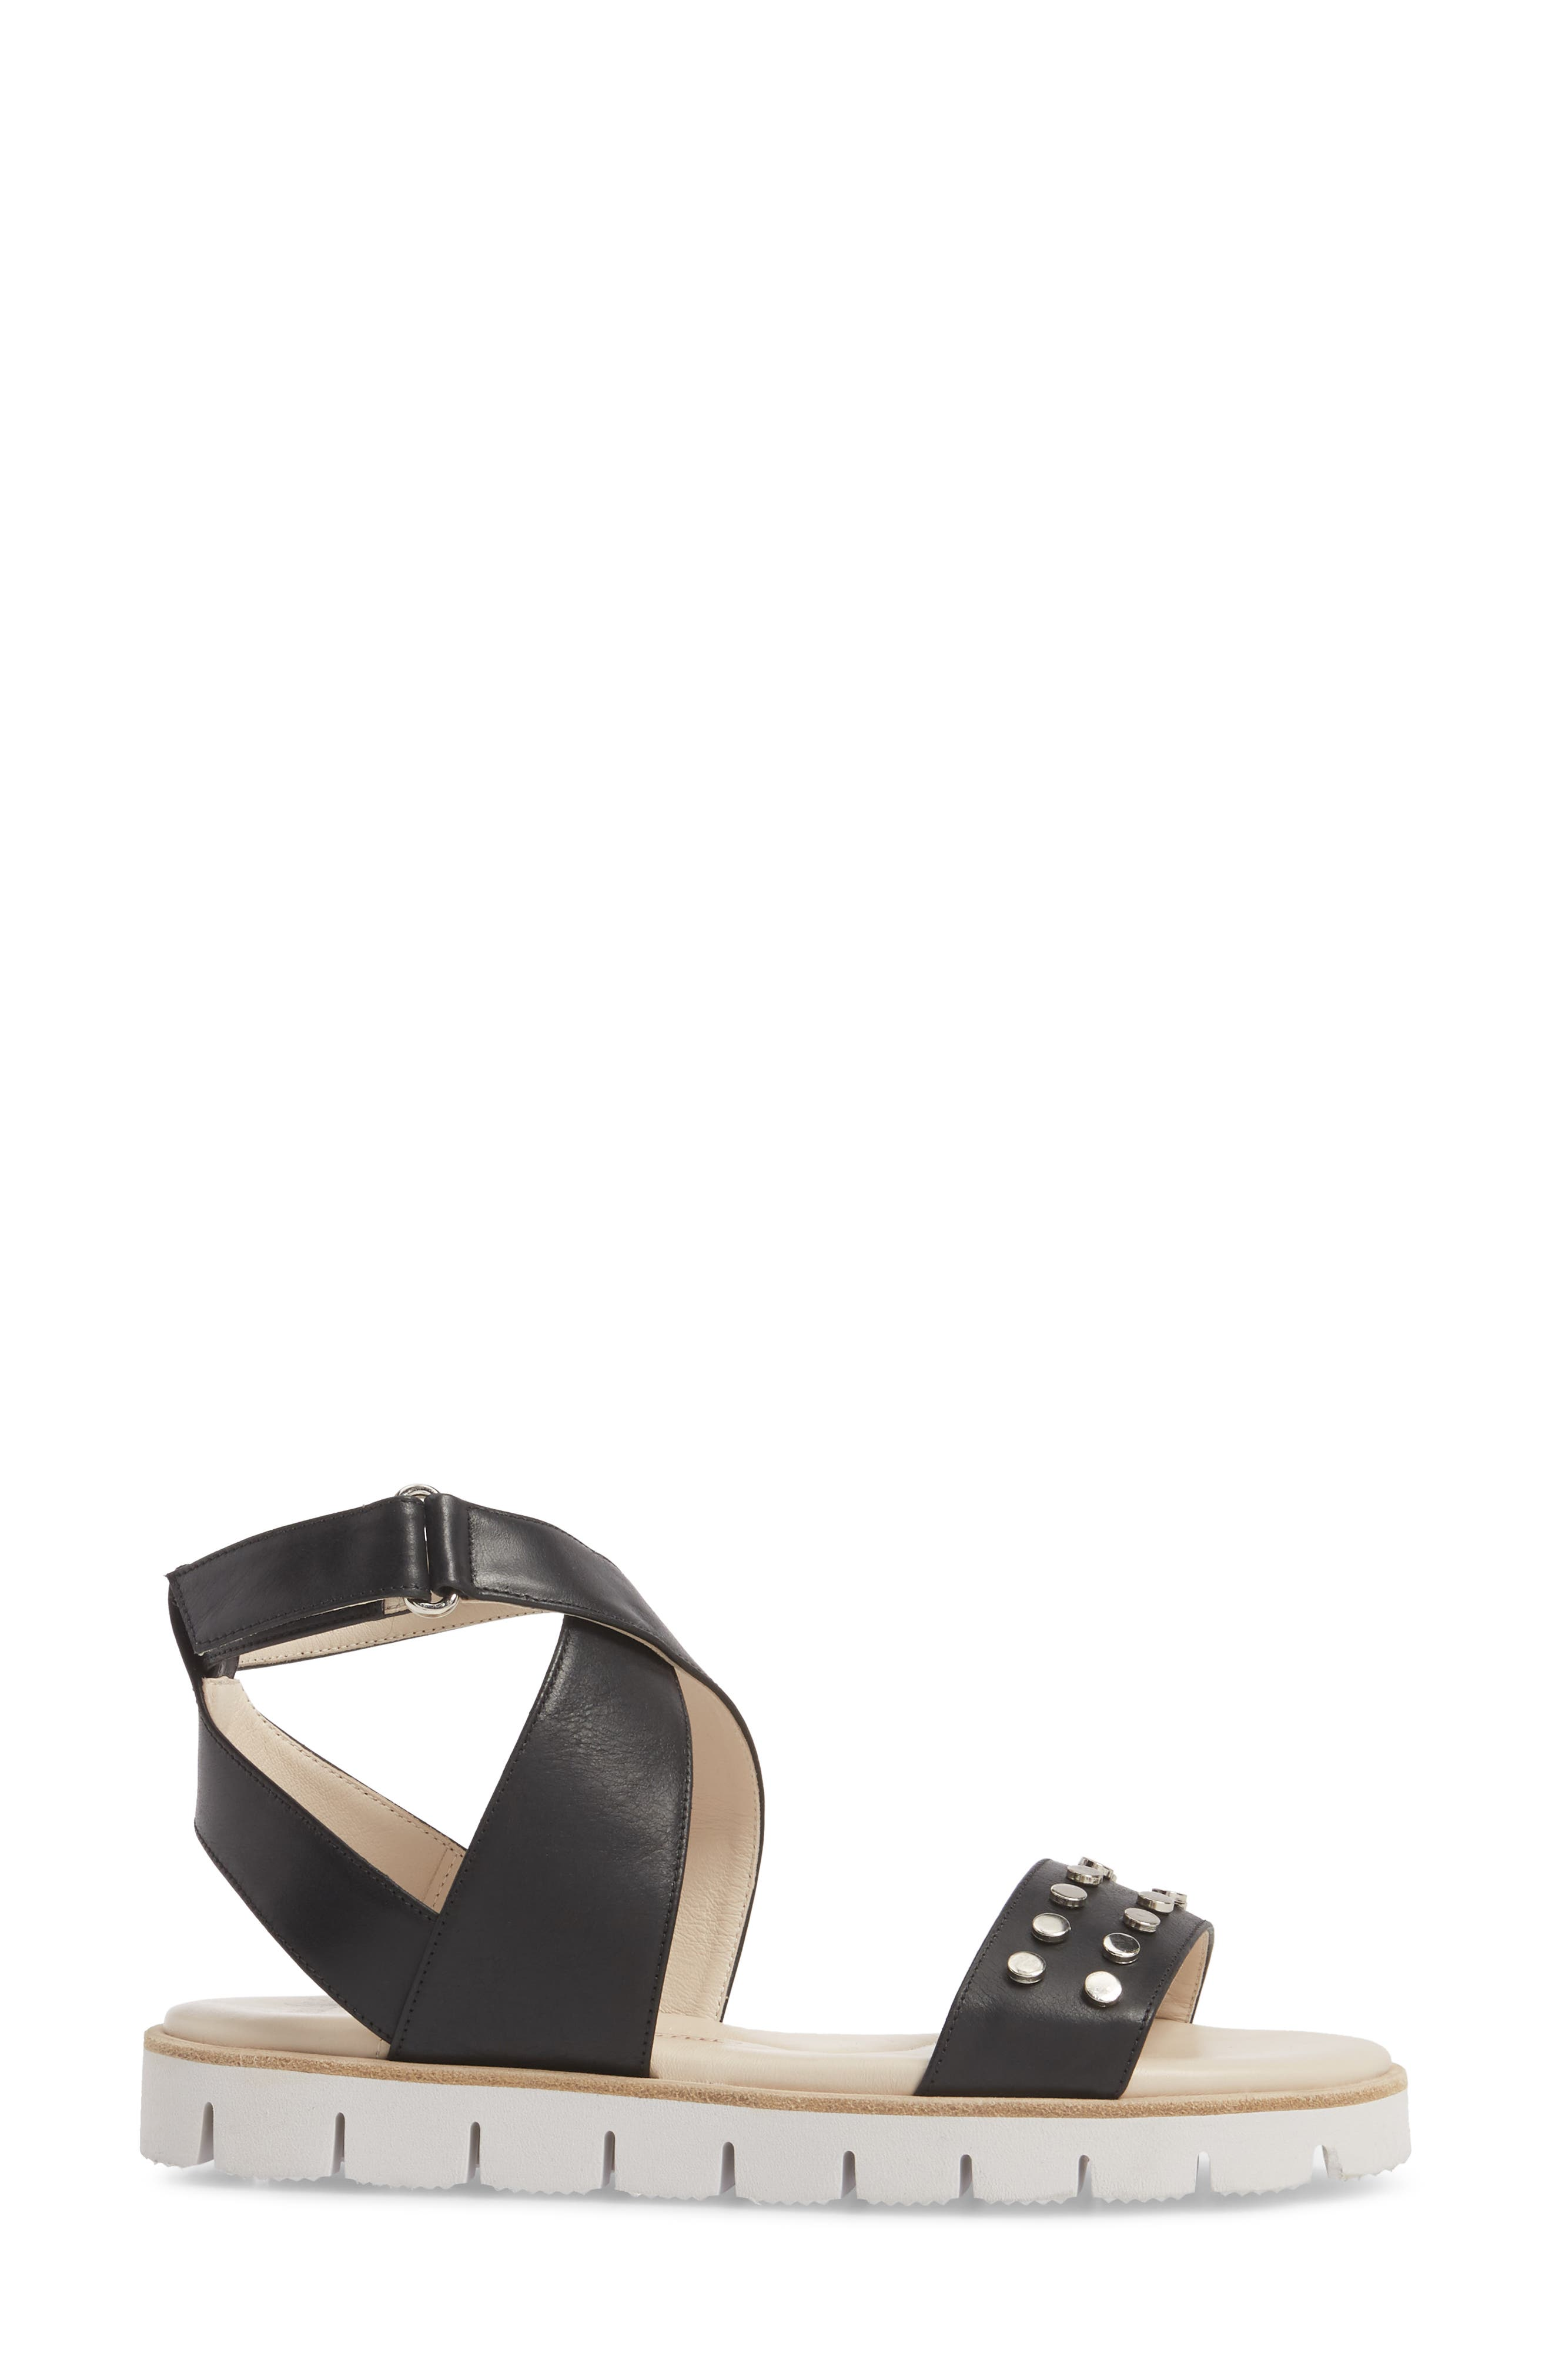 Barlume Sandal,                             Alternate thumbnail 3, color,                             BLACK LEATHER